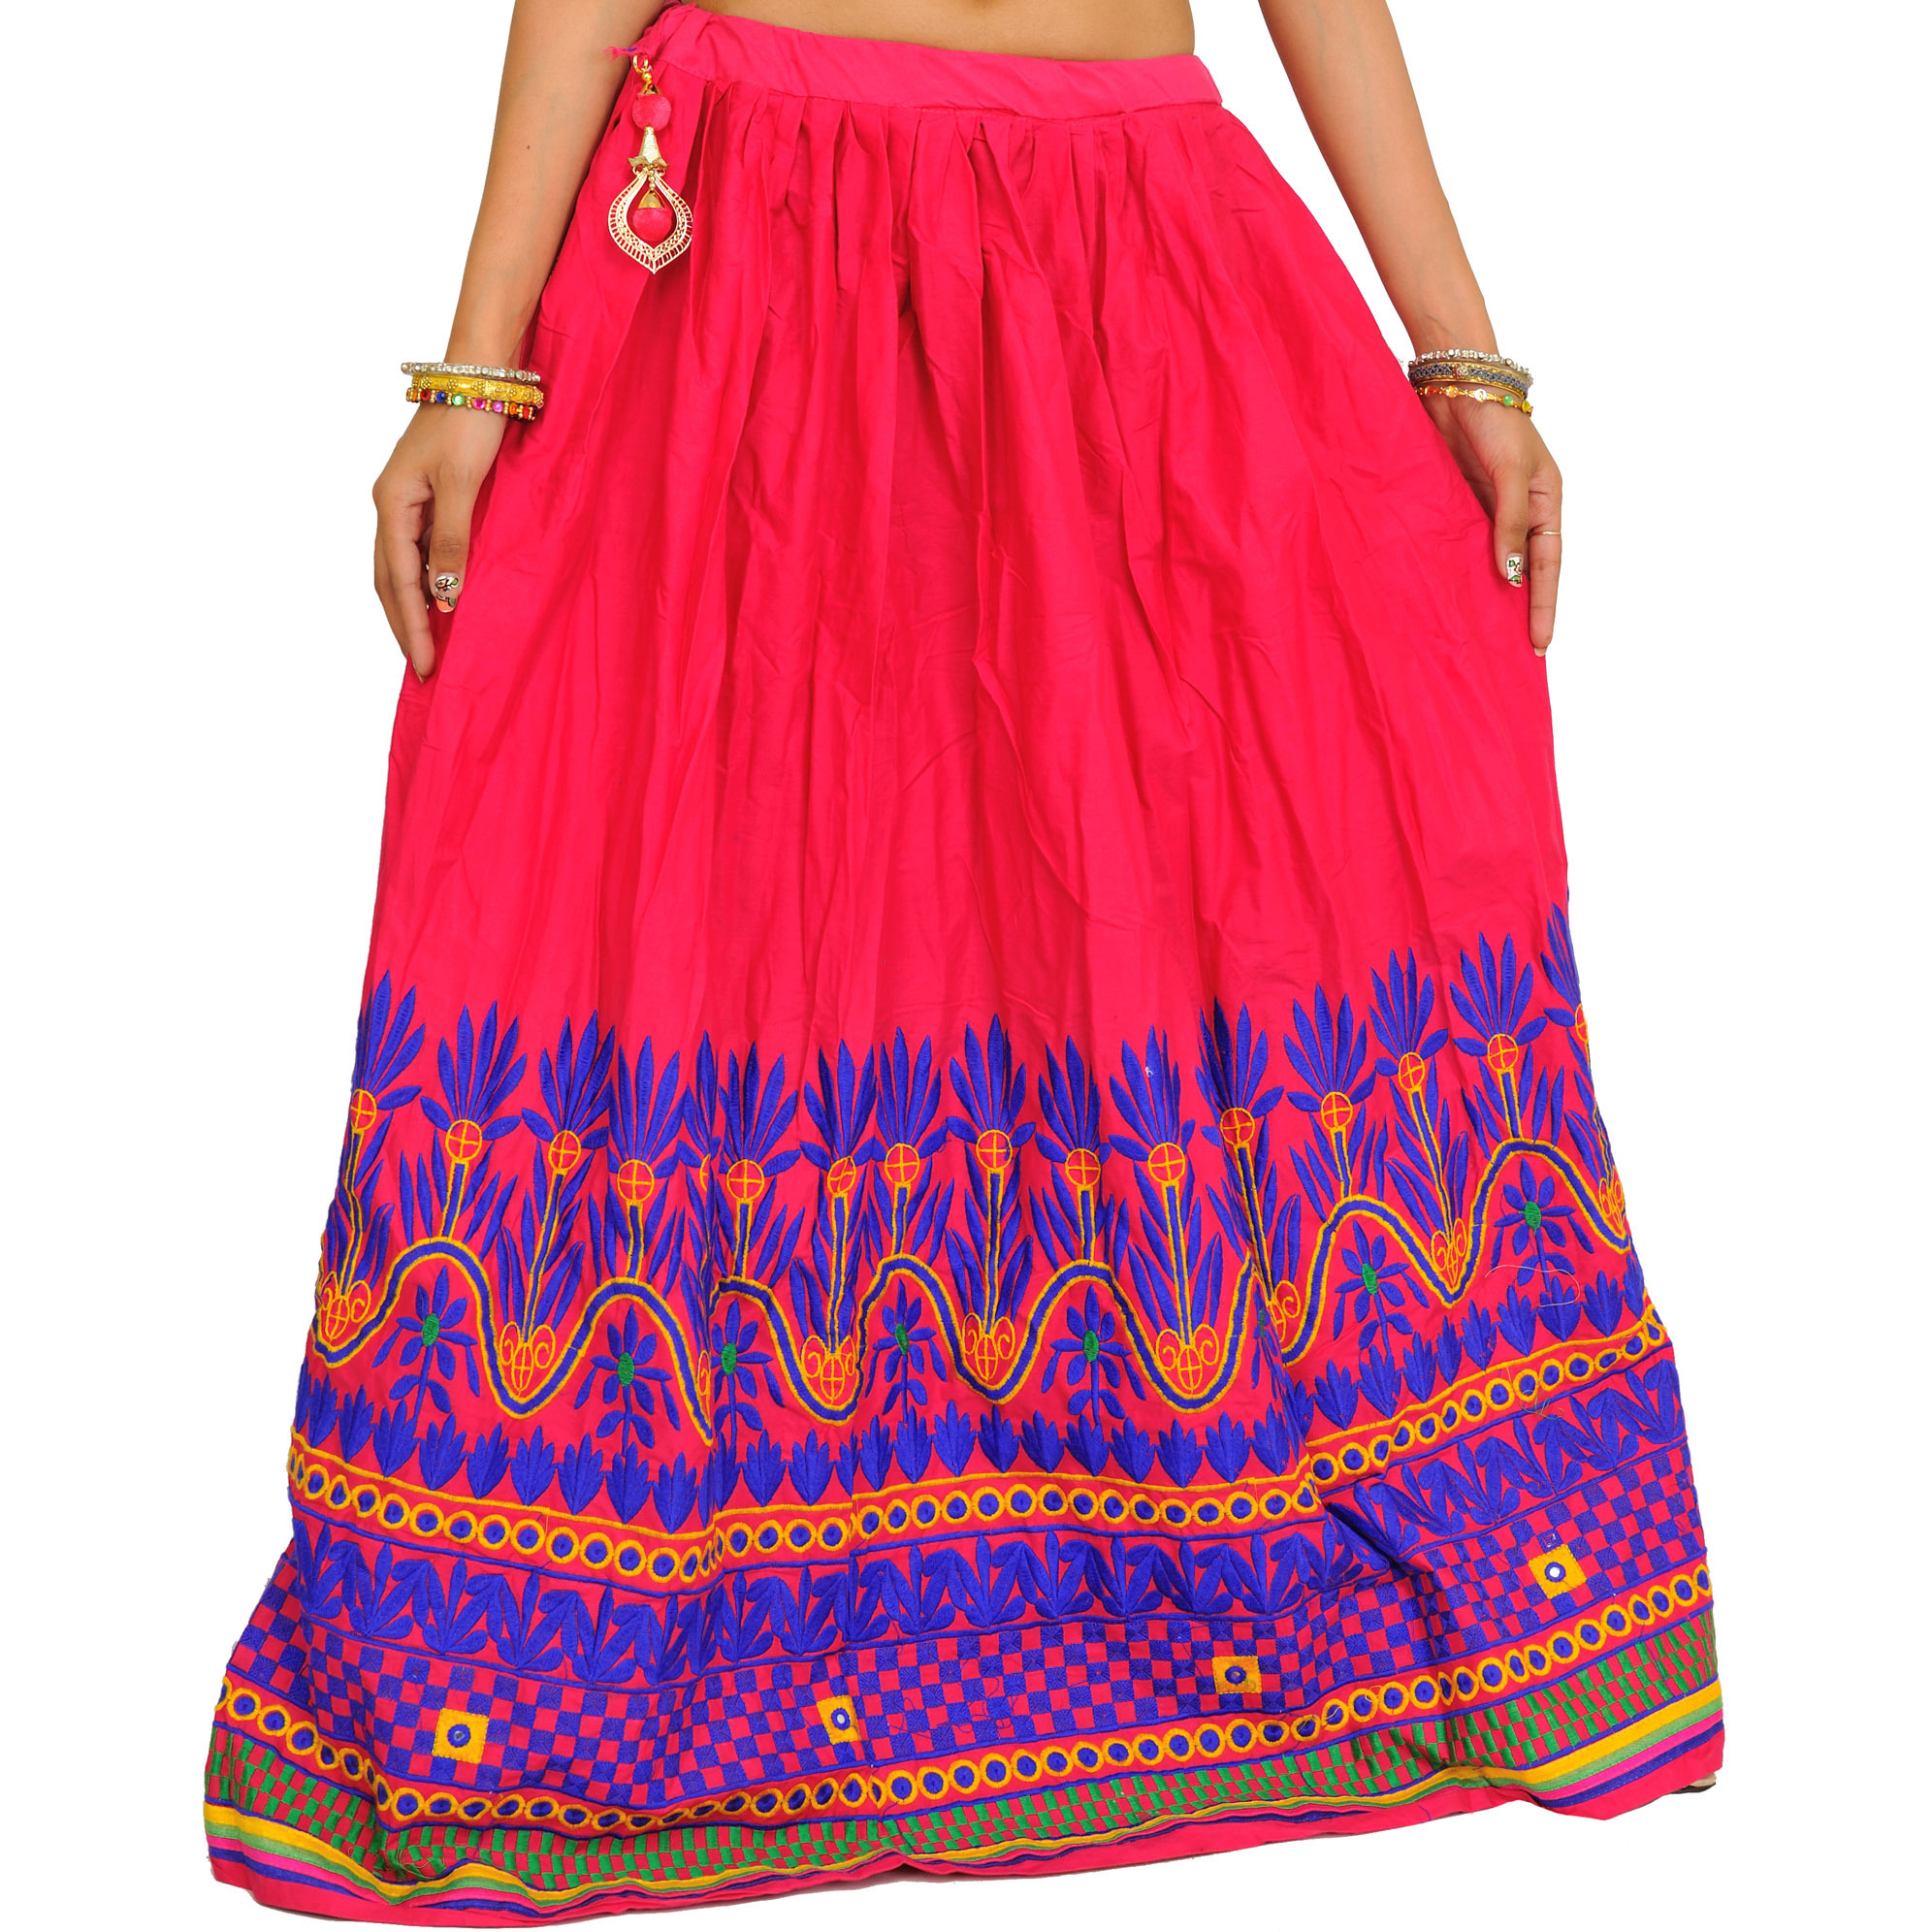 Raspberry-Sorbet Ghagra Skirt from Gujarat with Embroidery on Border